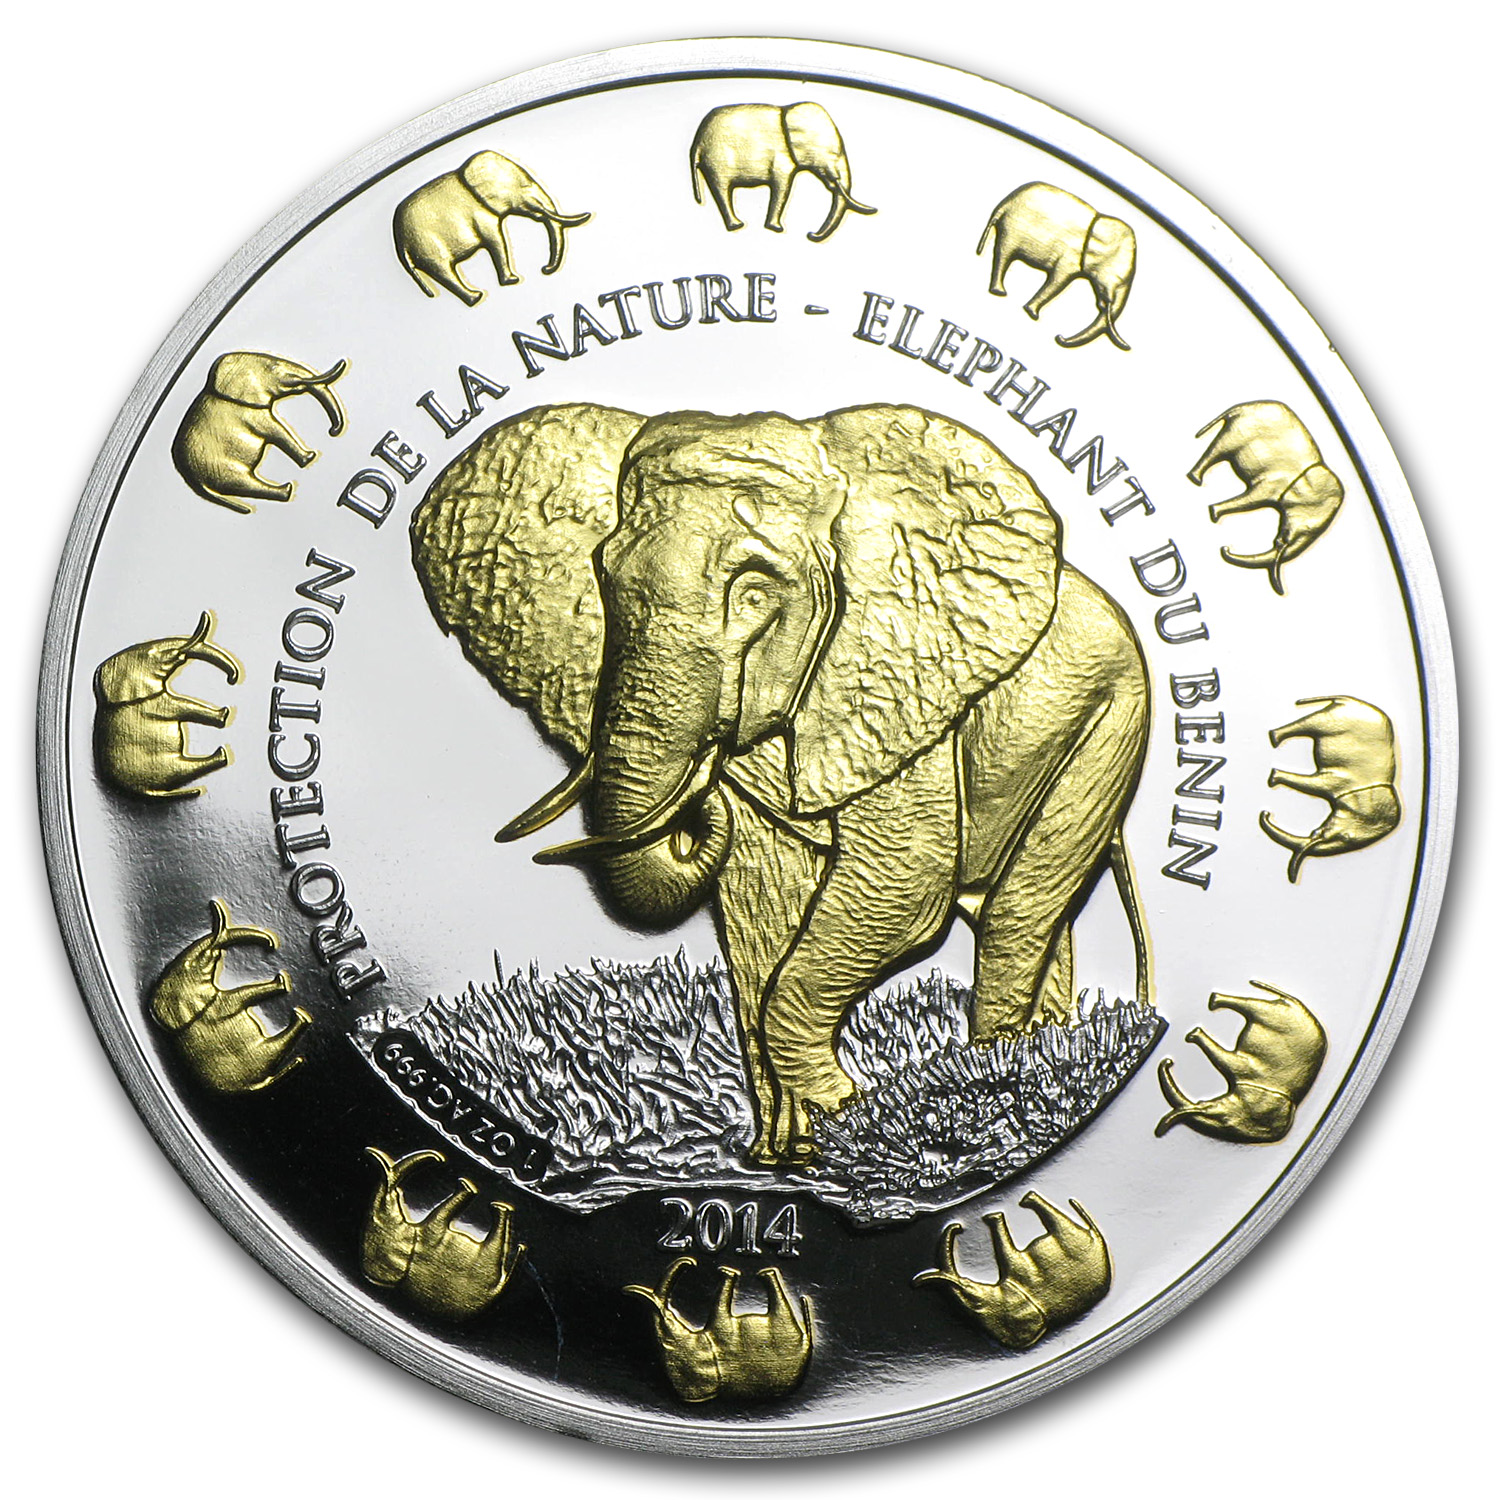 2014 Benin 1 oz Silver Protection de la Nature Elephant (Gilded)